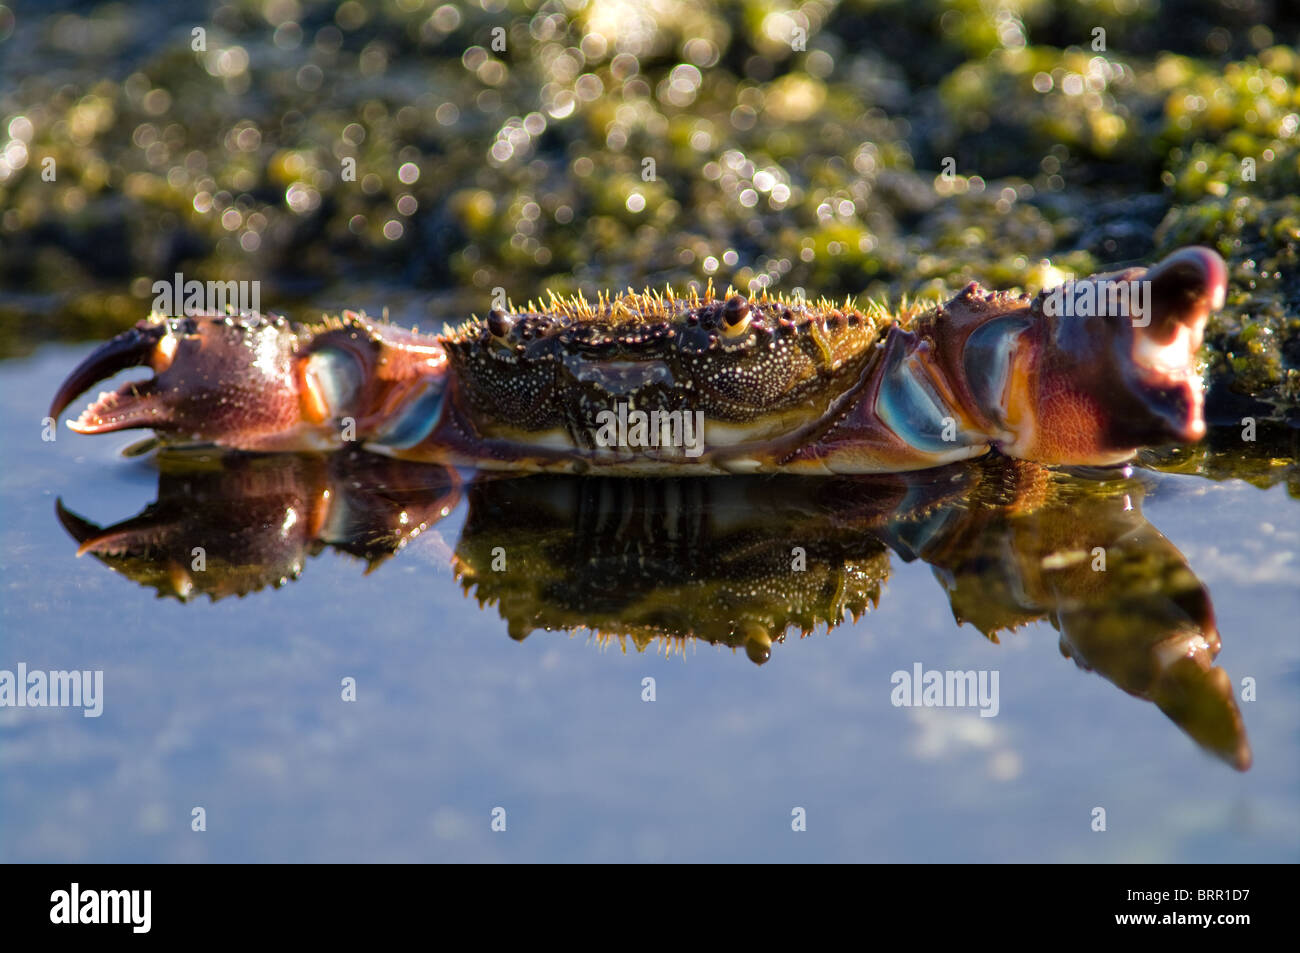 Mirror portrait of warty crab in the water - Stock Image